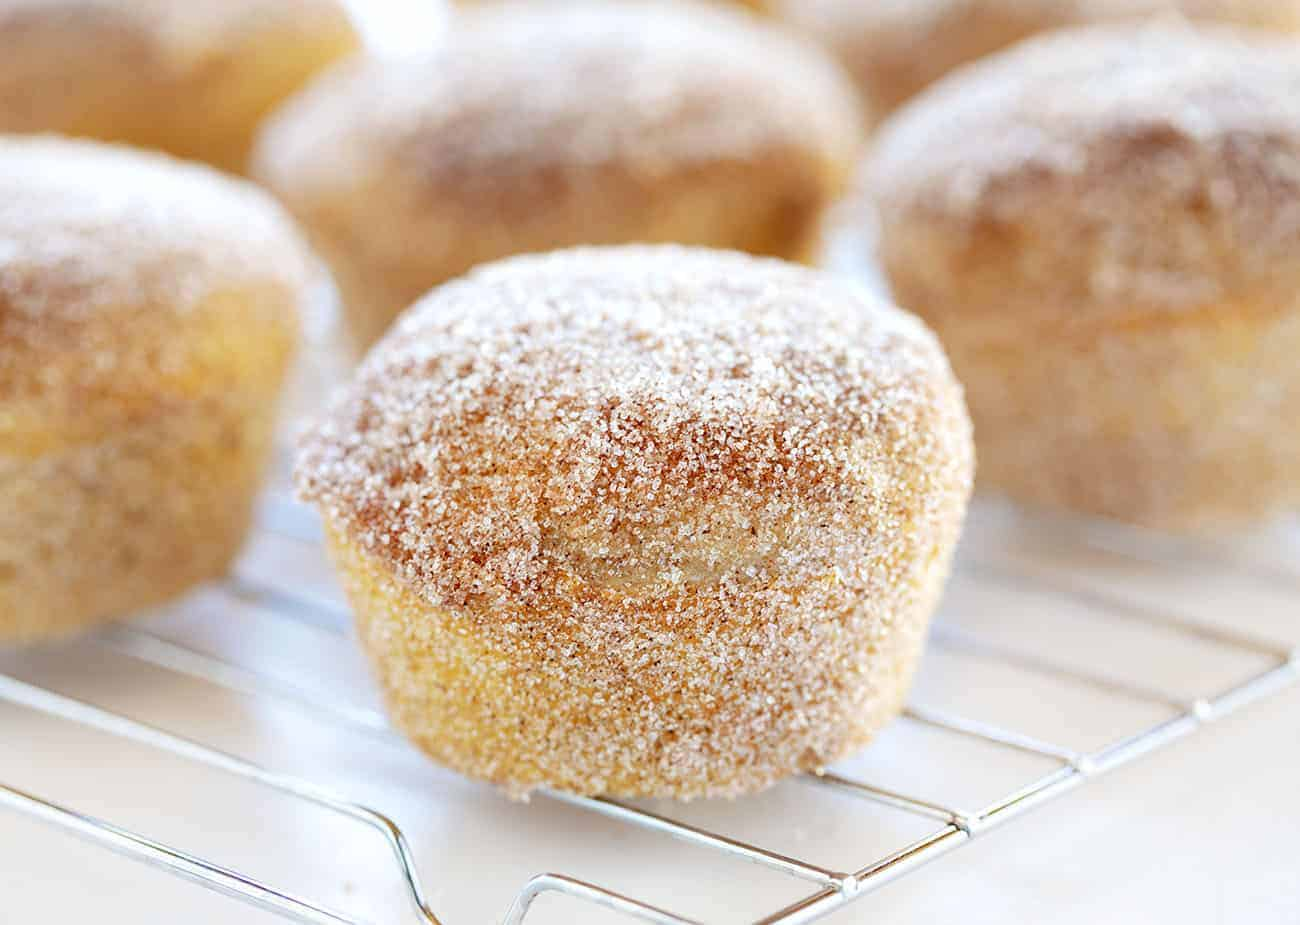 Cinnamon Sugar Donut Muffins on a Wire Rack